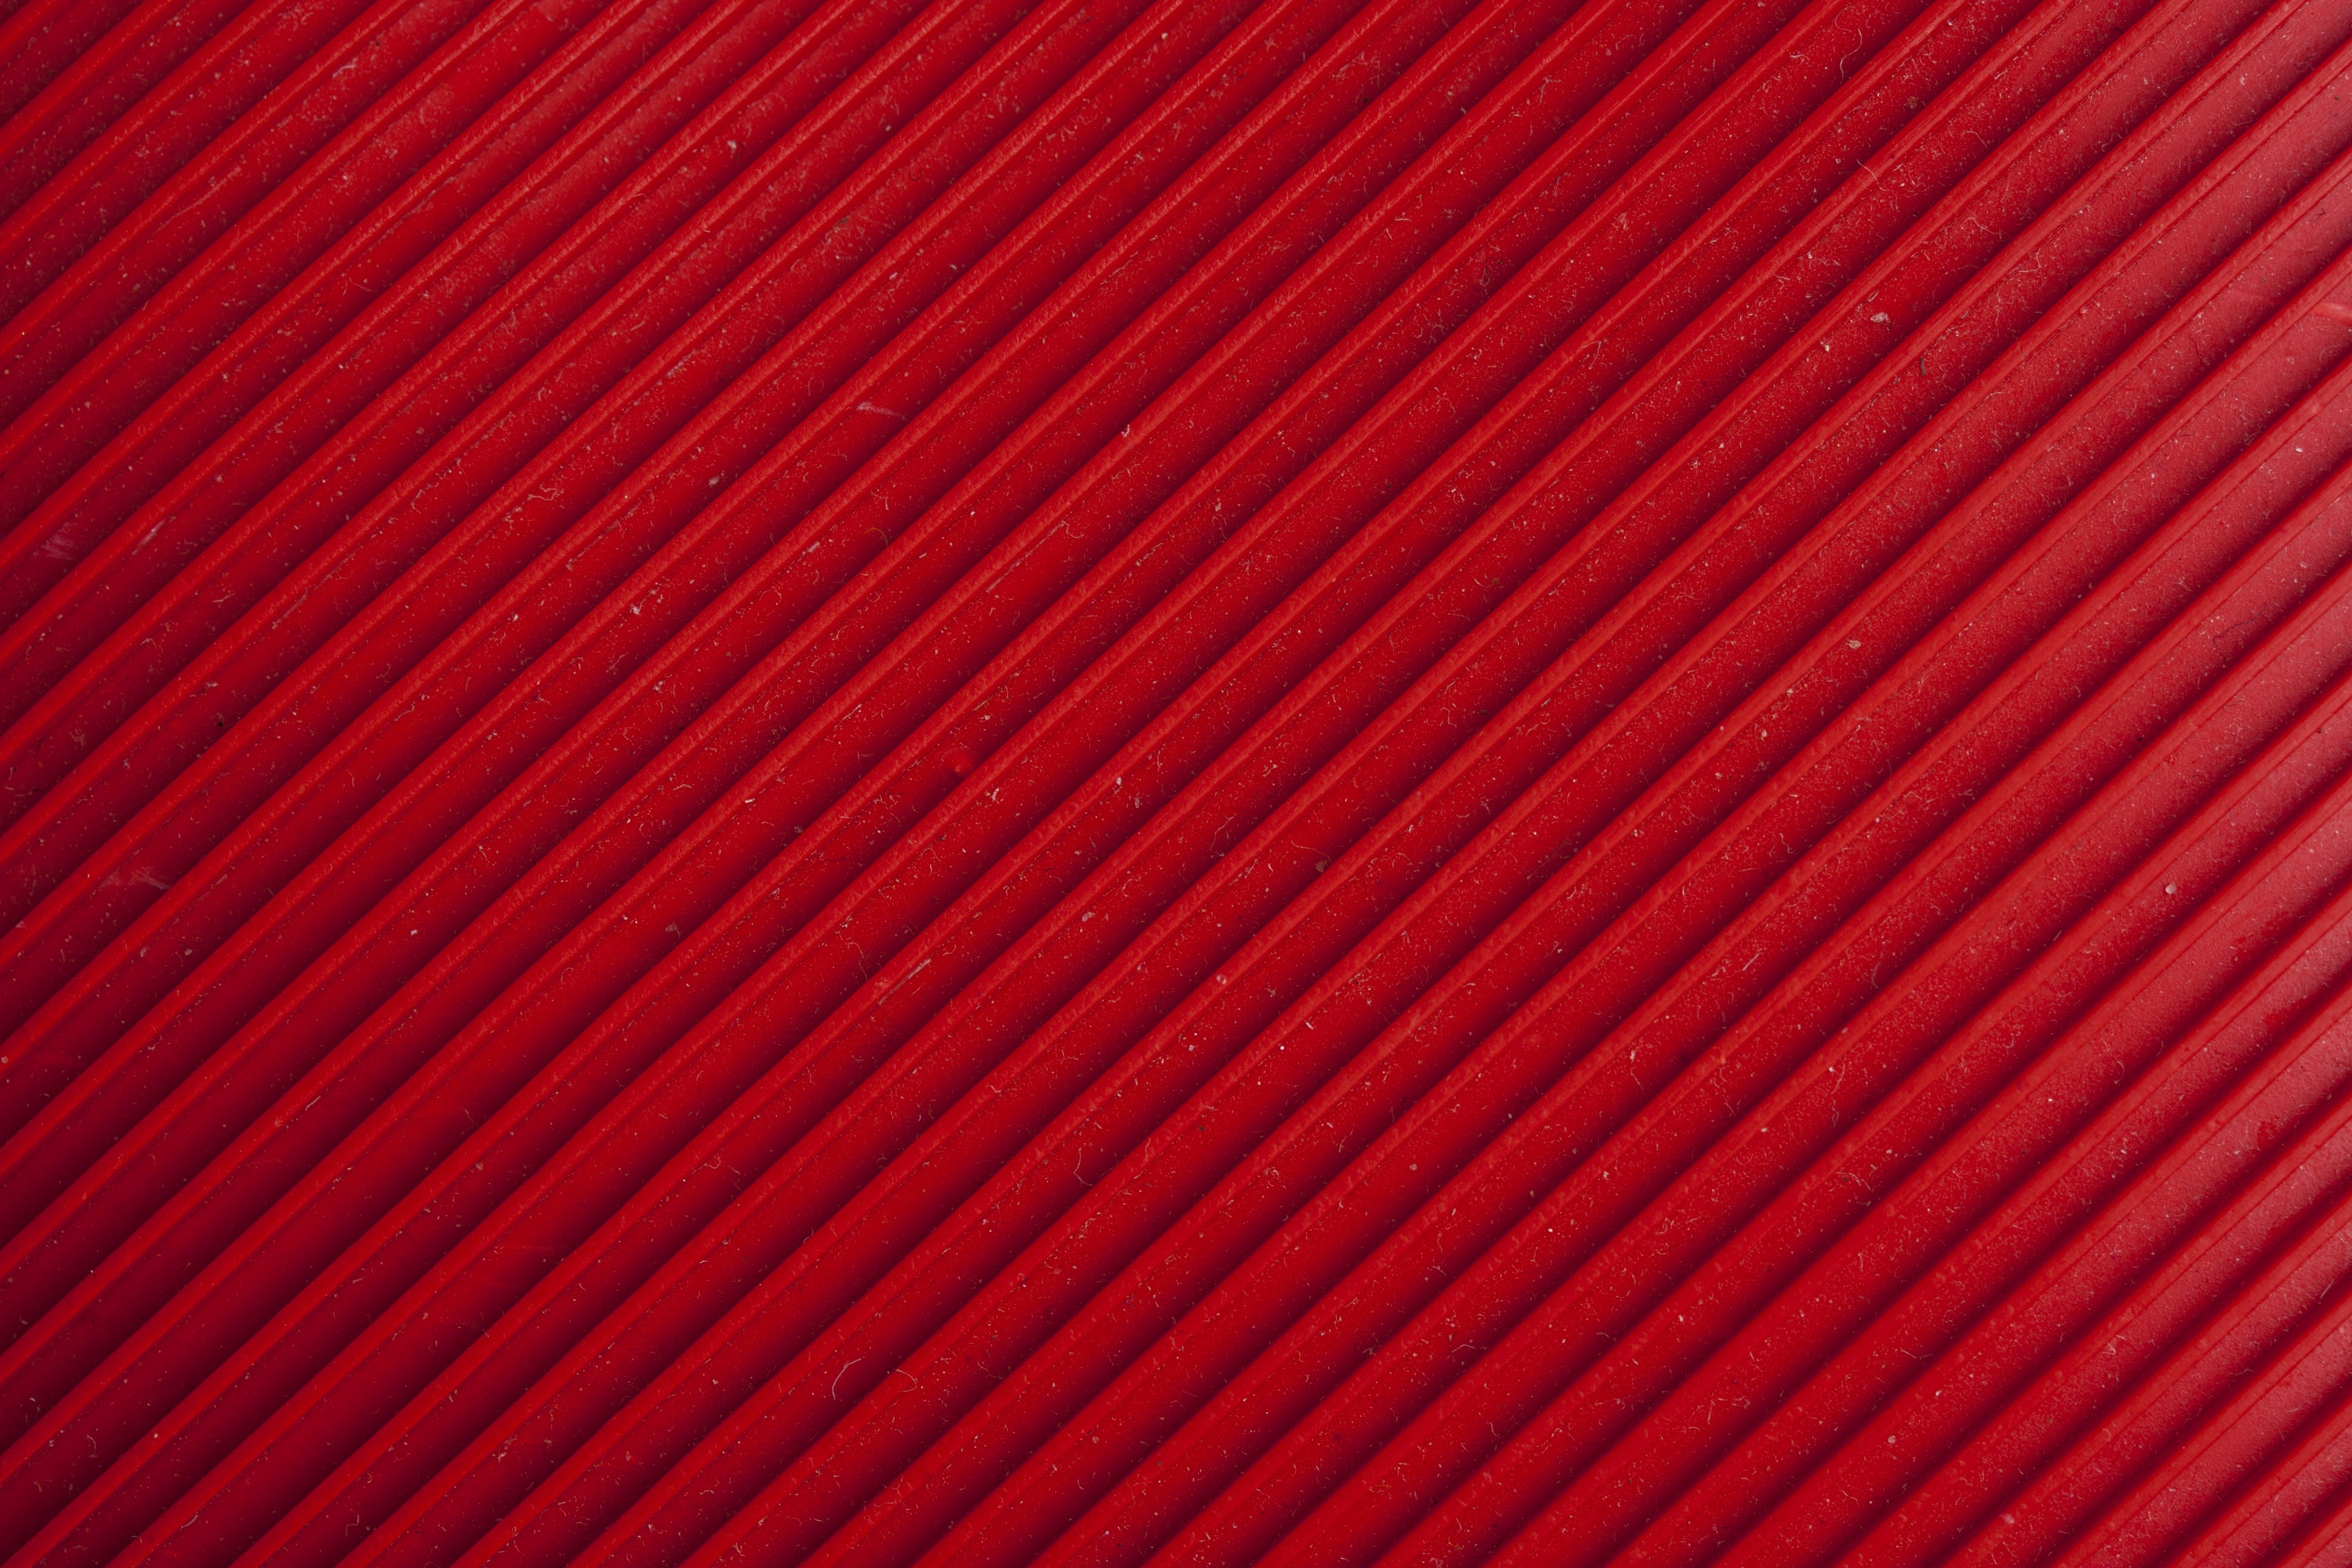 Free stock photo of red, pattern, texture, abstract